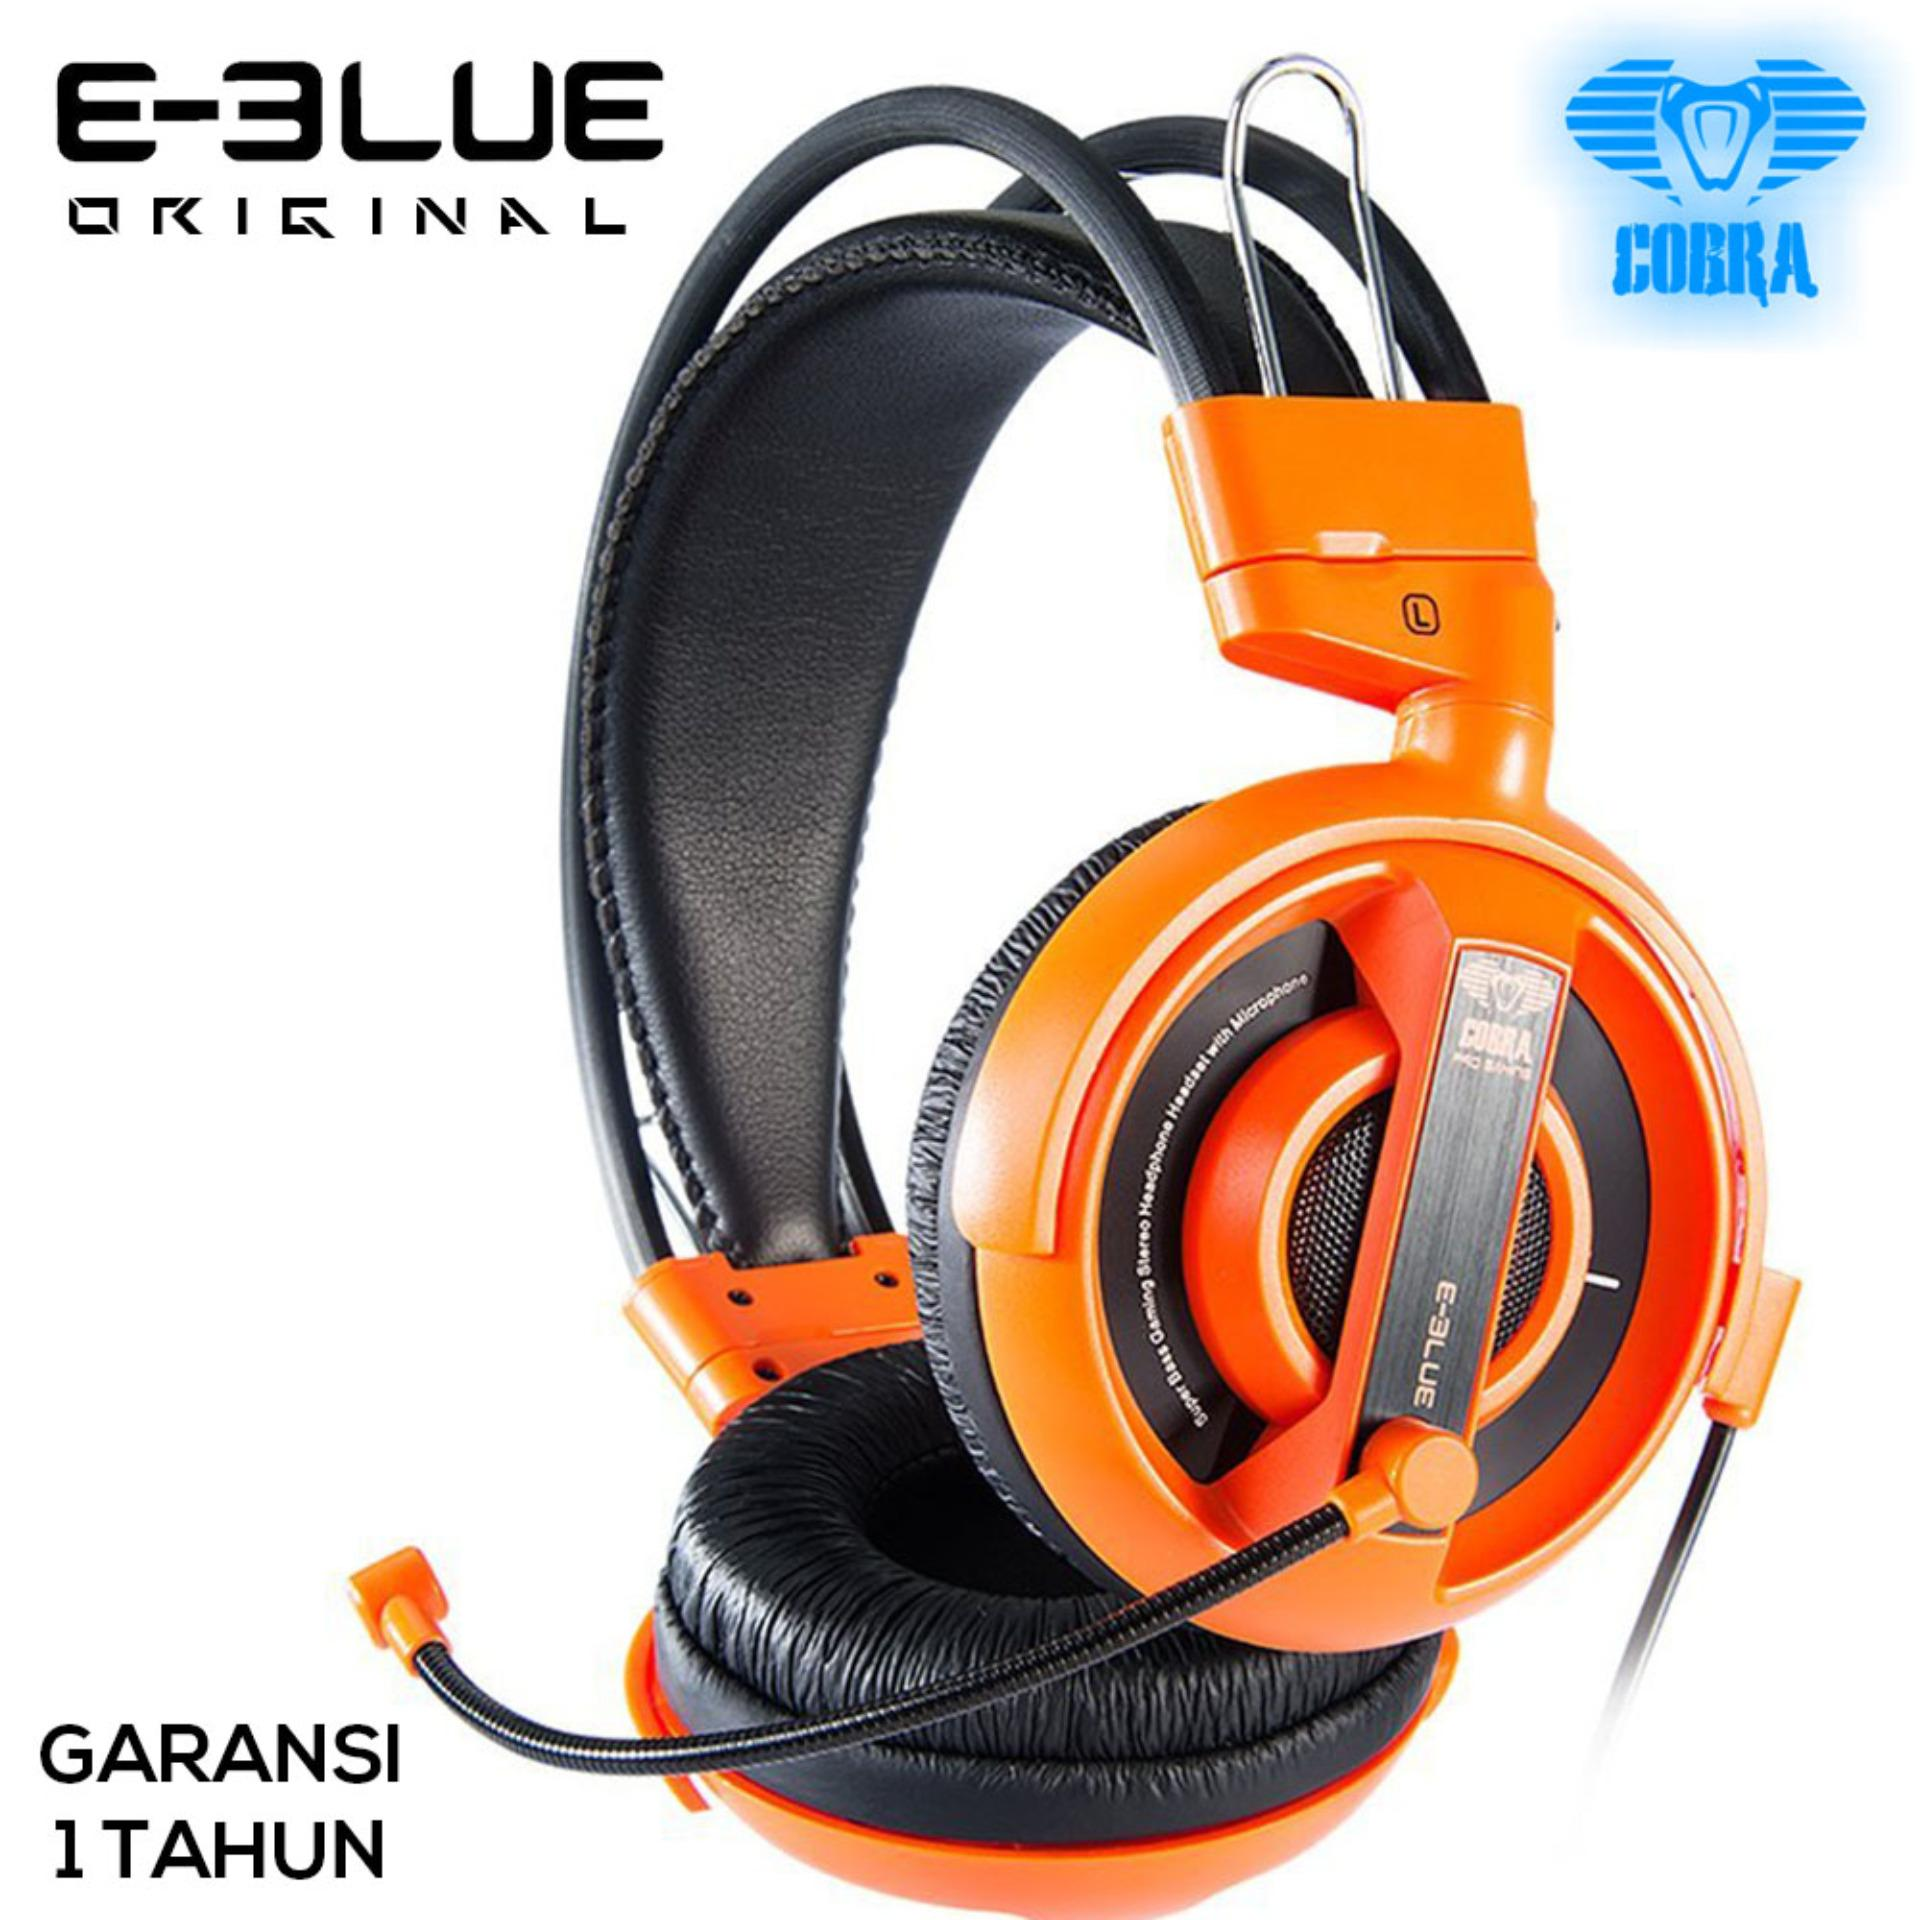 E-Blue Cobra Series Professional Gaming Headset  - EHS013 - Orange